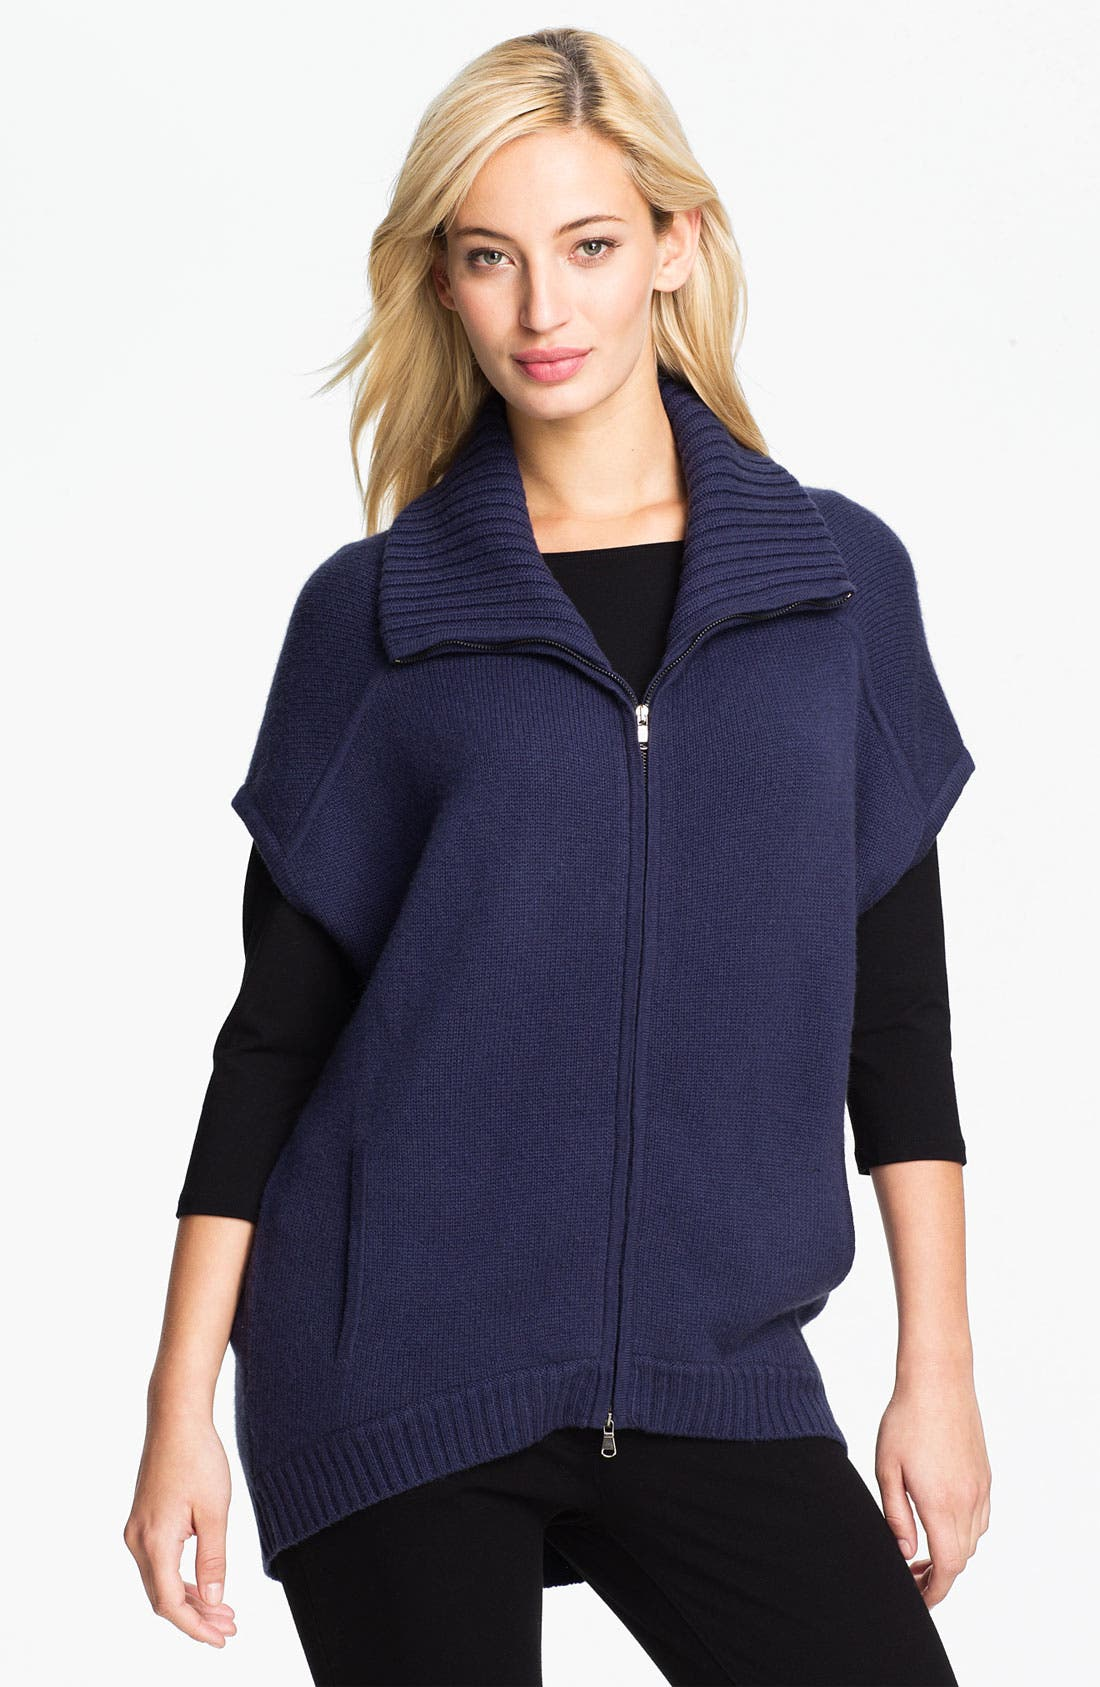 Alternate Image 1 Selected - Christopher Fischer 'Hyacinth' Cashmere Sweater Jacket (Online Exclusive)